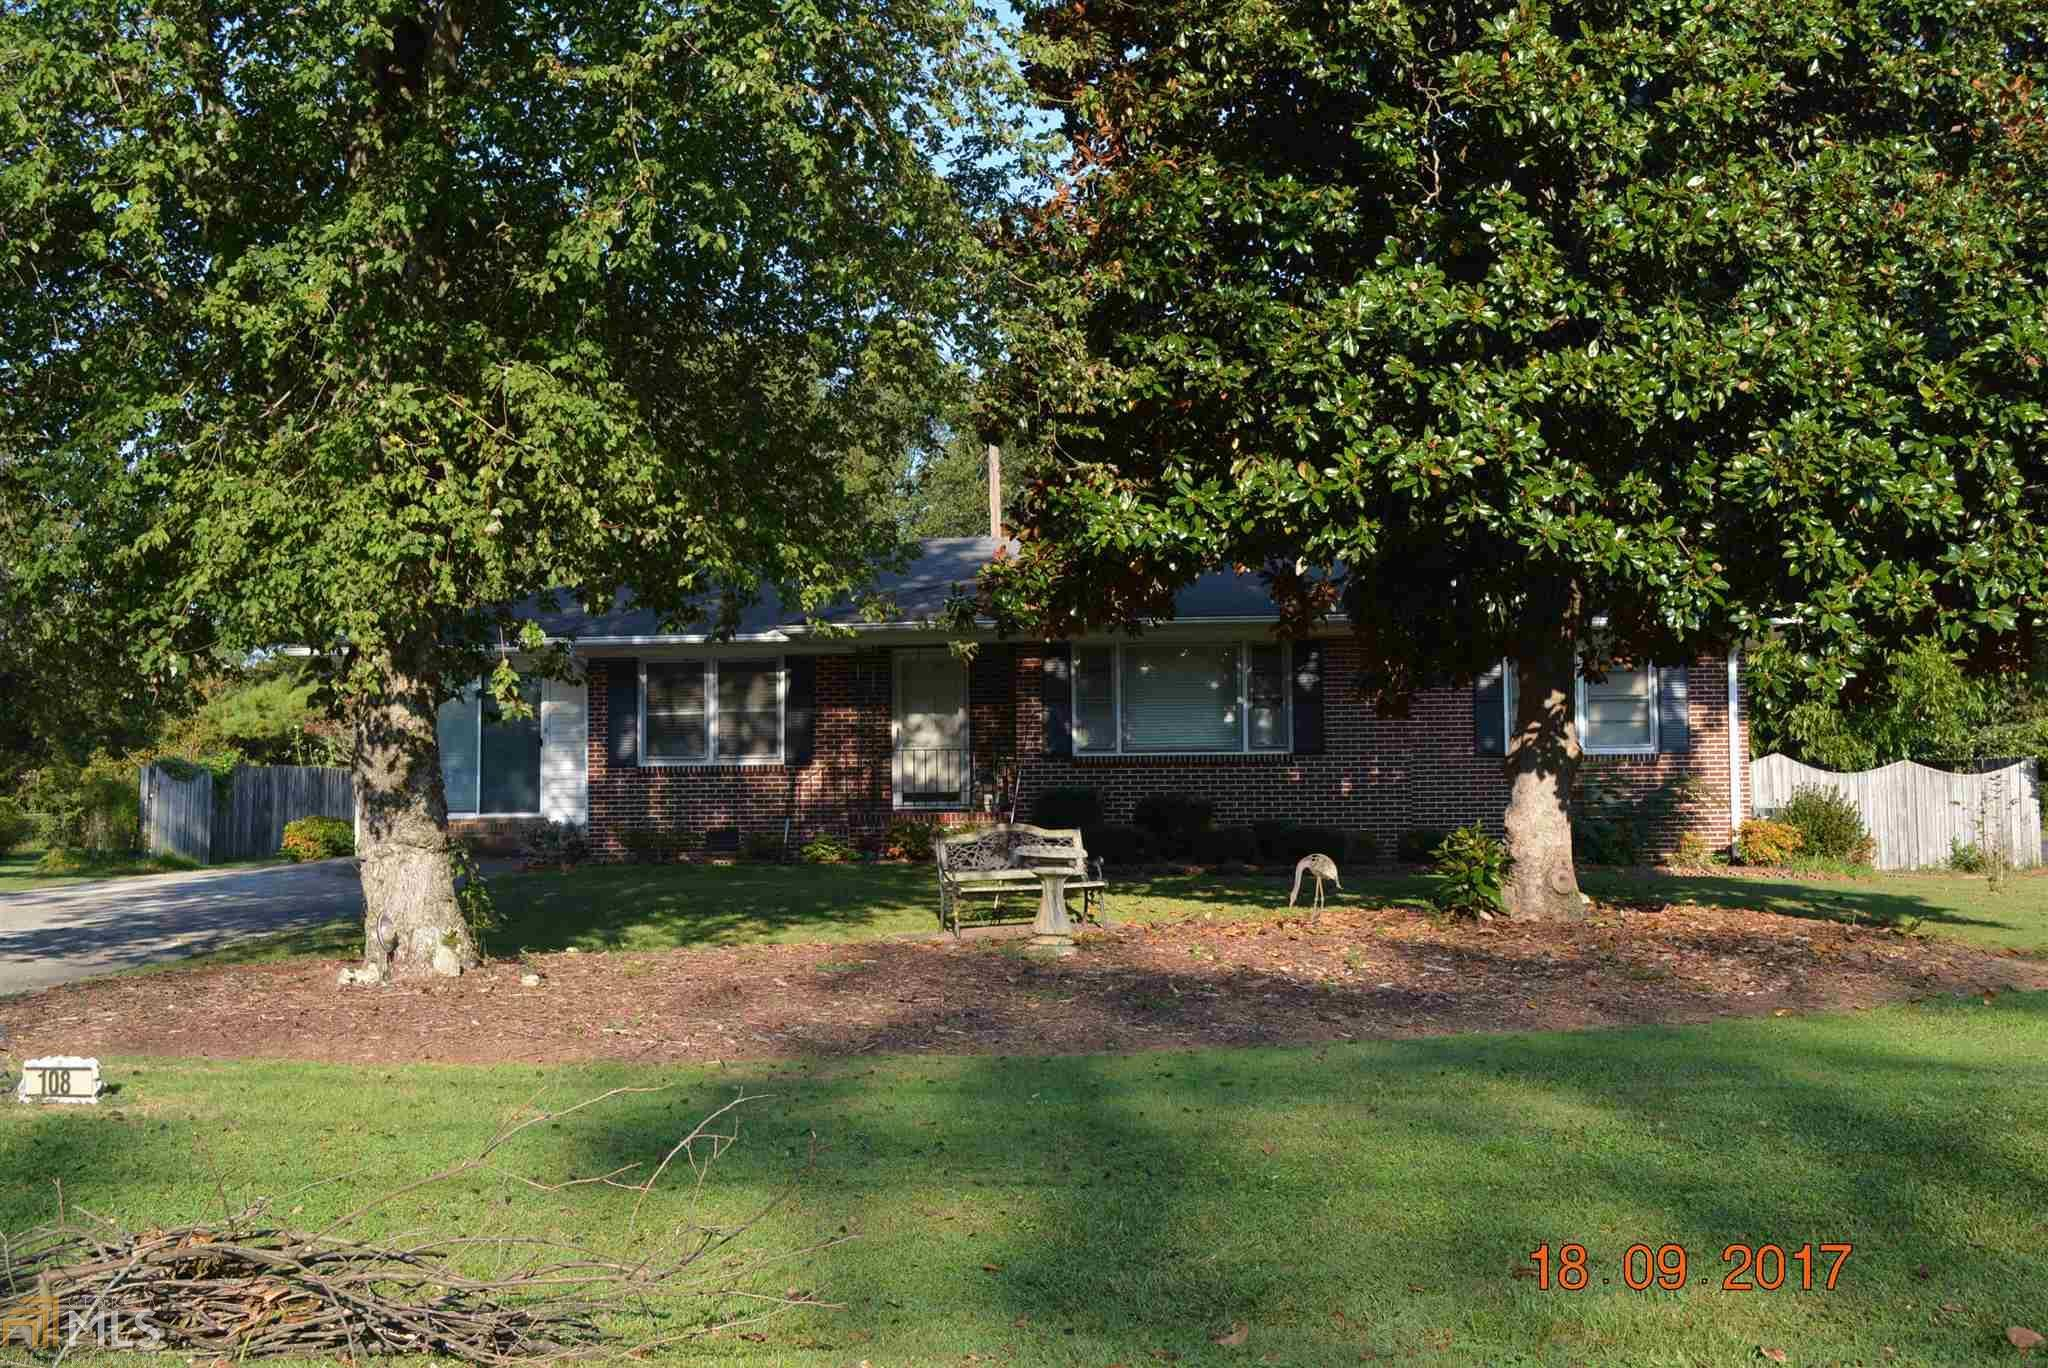 108 Smith St, Hartwell, GA | MLS# 8258985 | Lake Hartwell